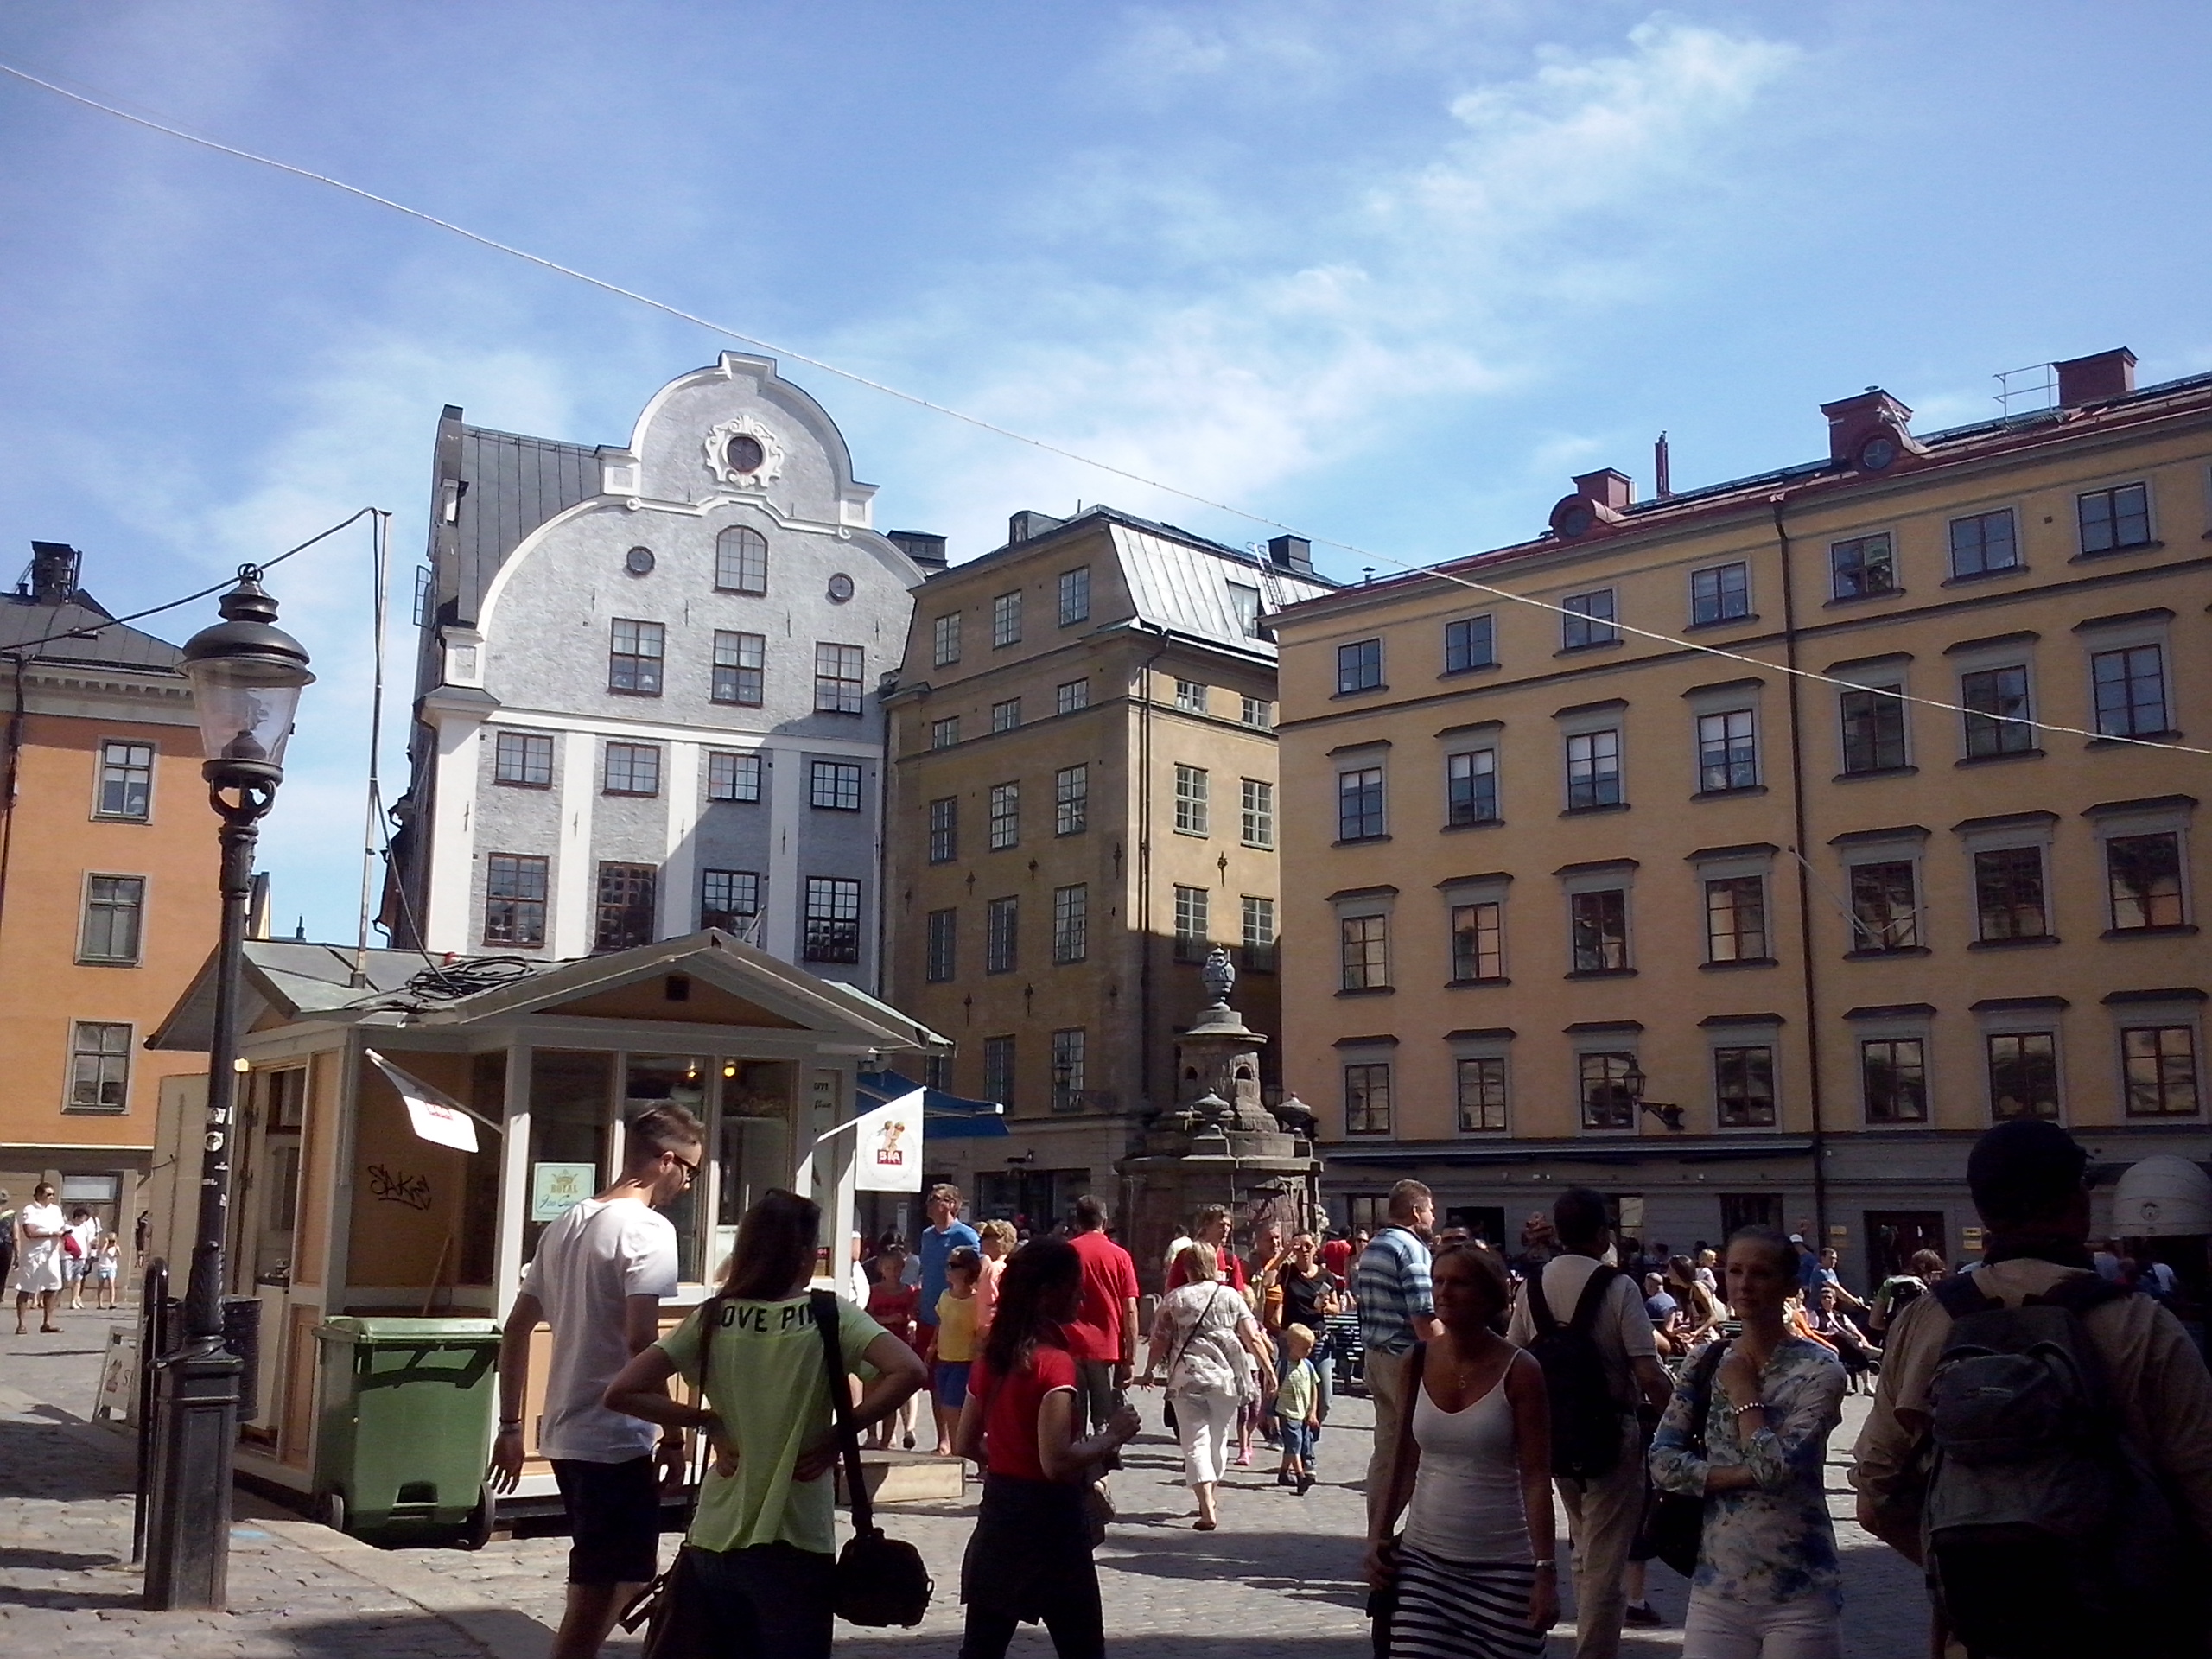 Enjoy Stockholm orienteering guided tour. Explore Sweden: stories, travel destinations and lifestyle